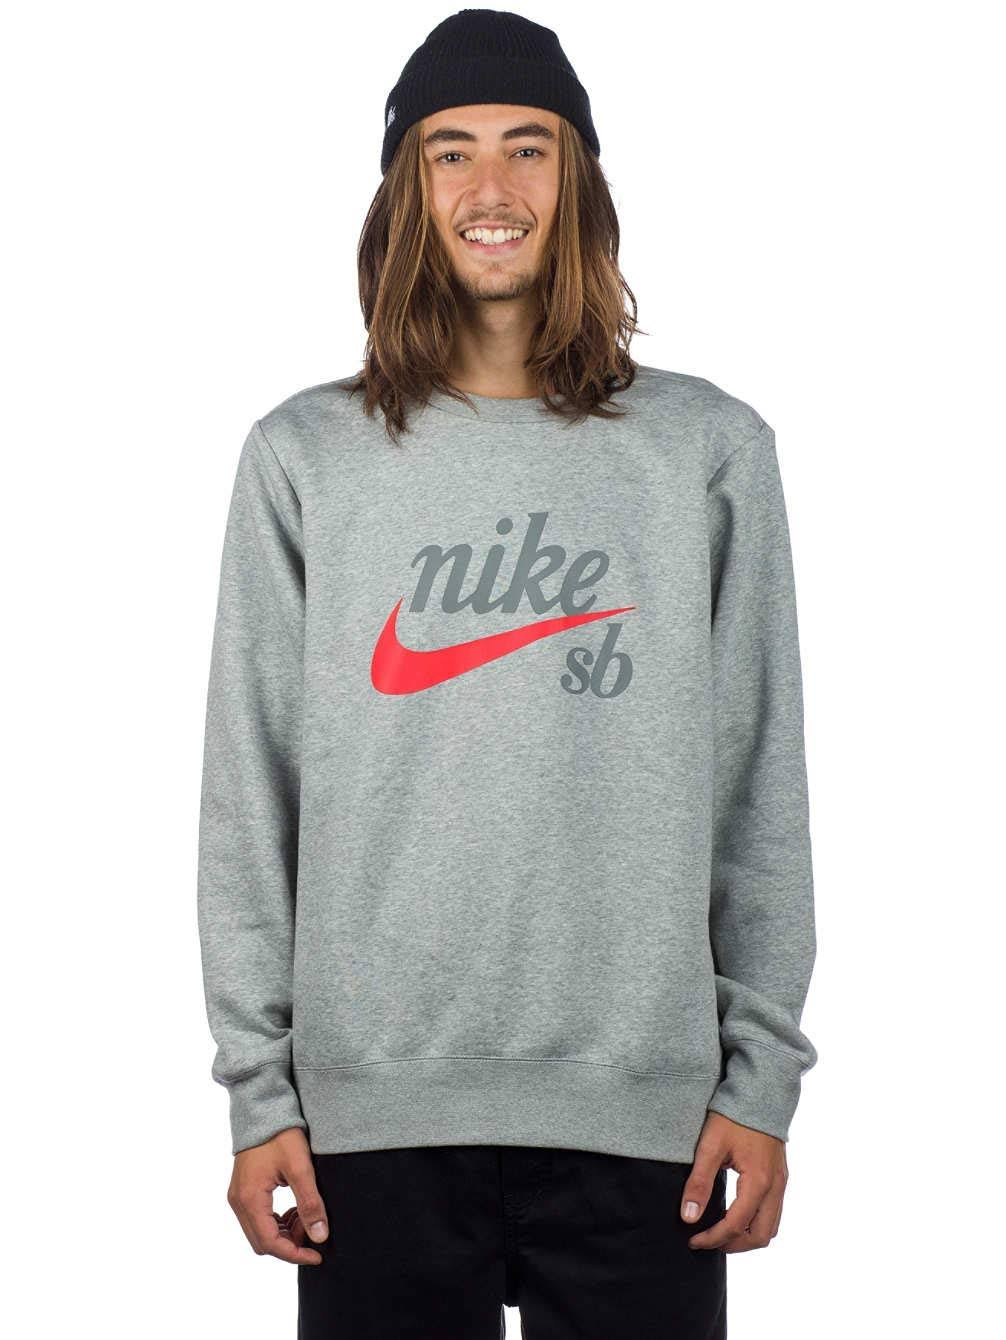 Icon Sb Craft 938414 Top Nike Hombres 7HqwU